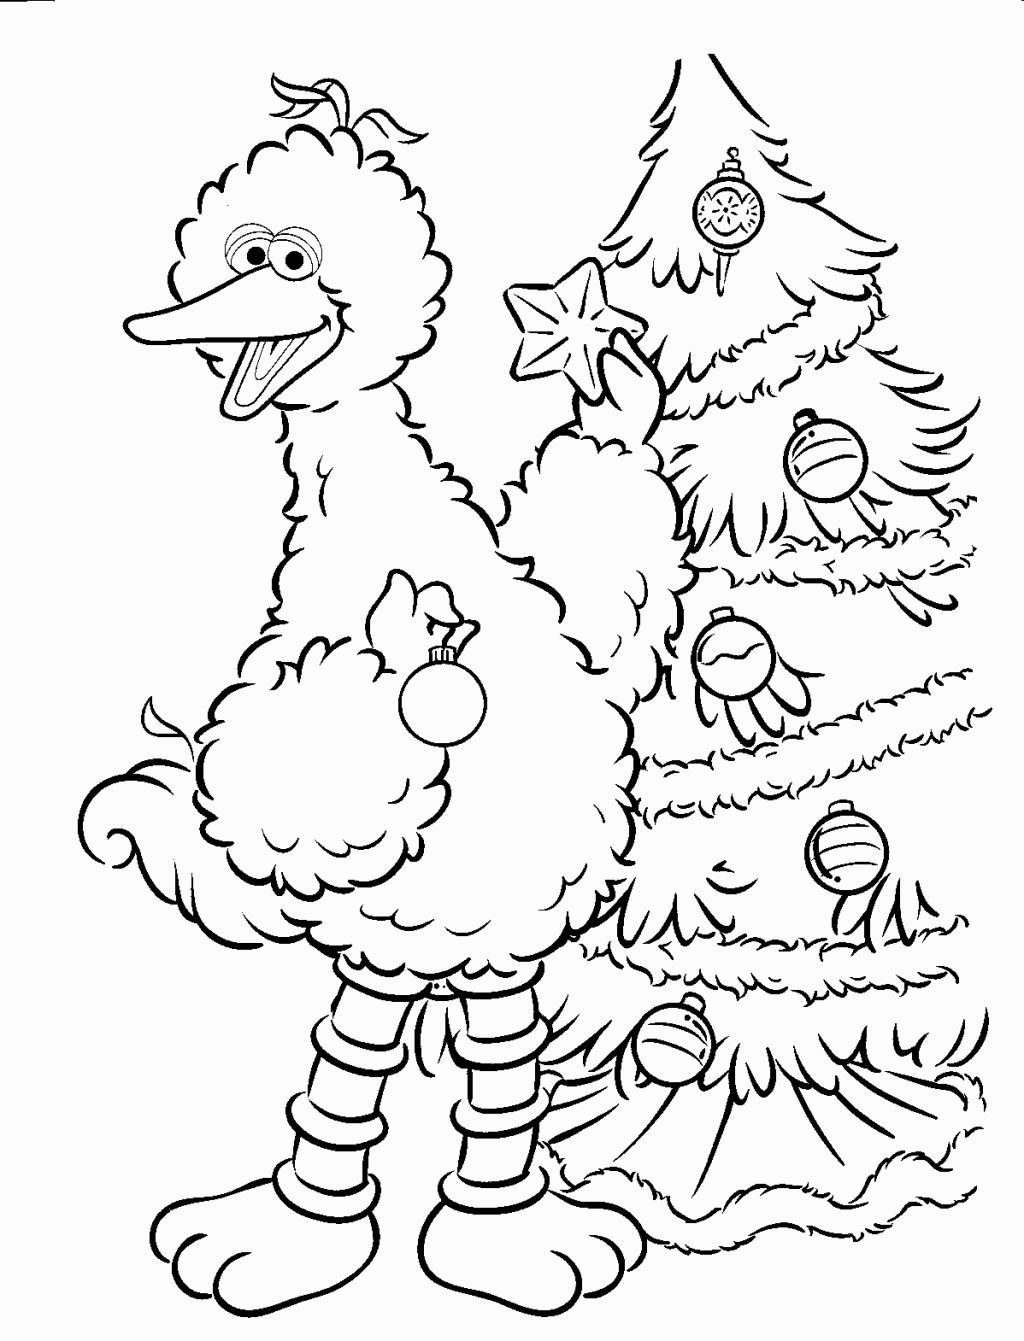 Sesame Street Coloring Sheets | Coloring Pages | Pinterest | Sesame ...